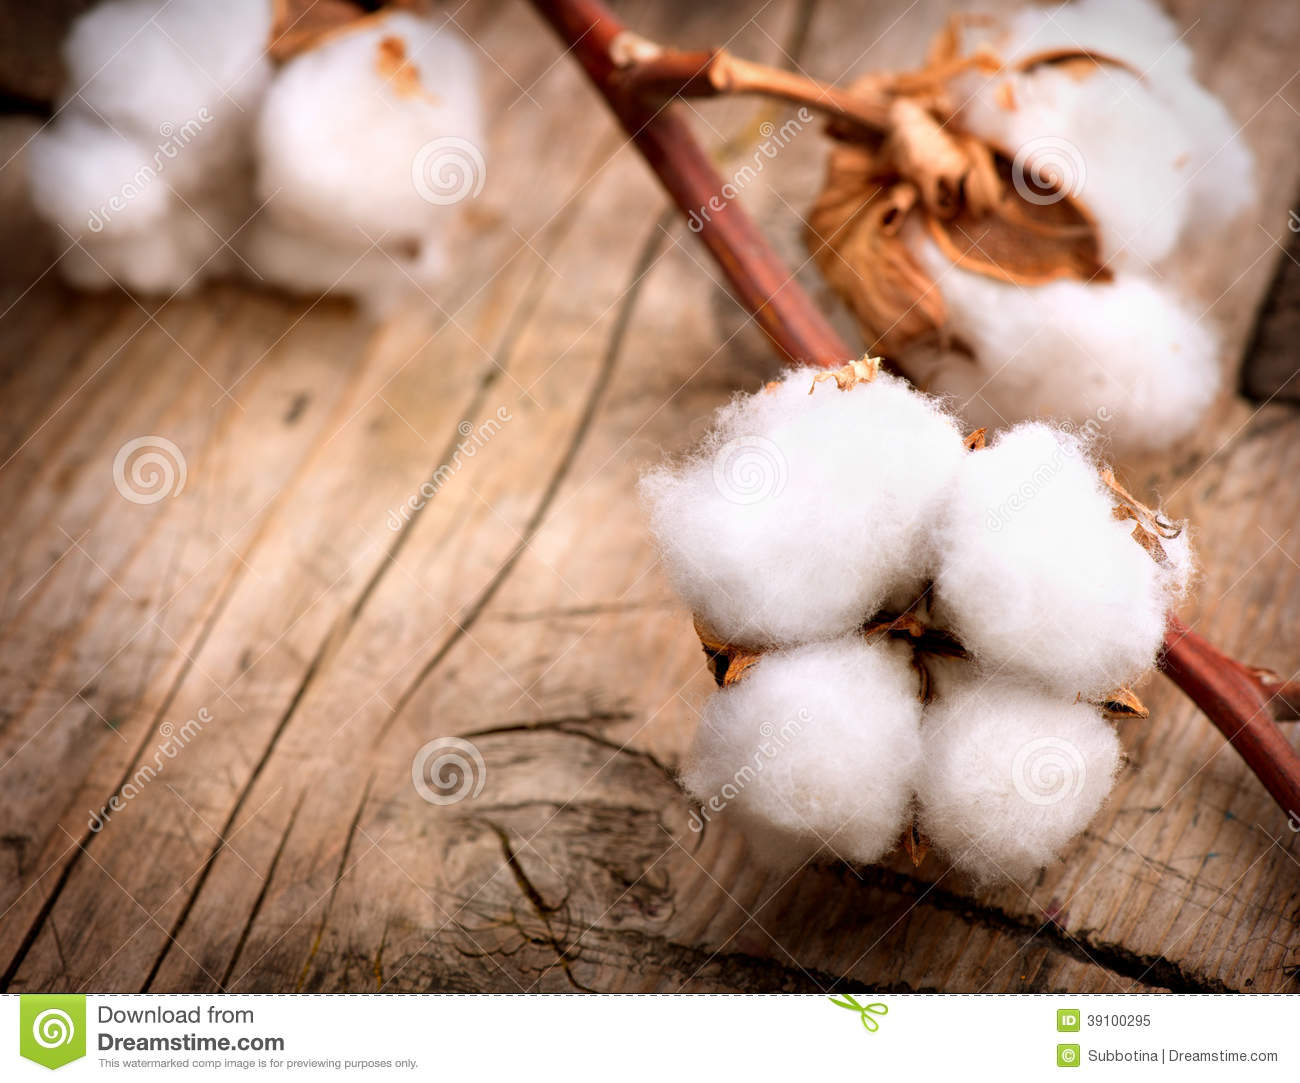 Cotton Plant Buds Over Wood Stock Photo - Image: 39100295